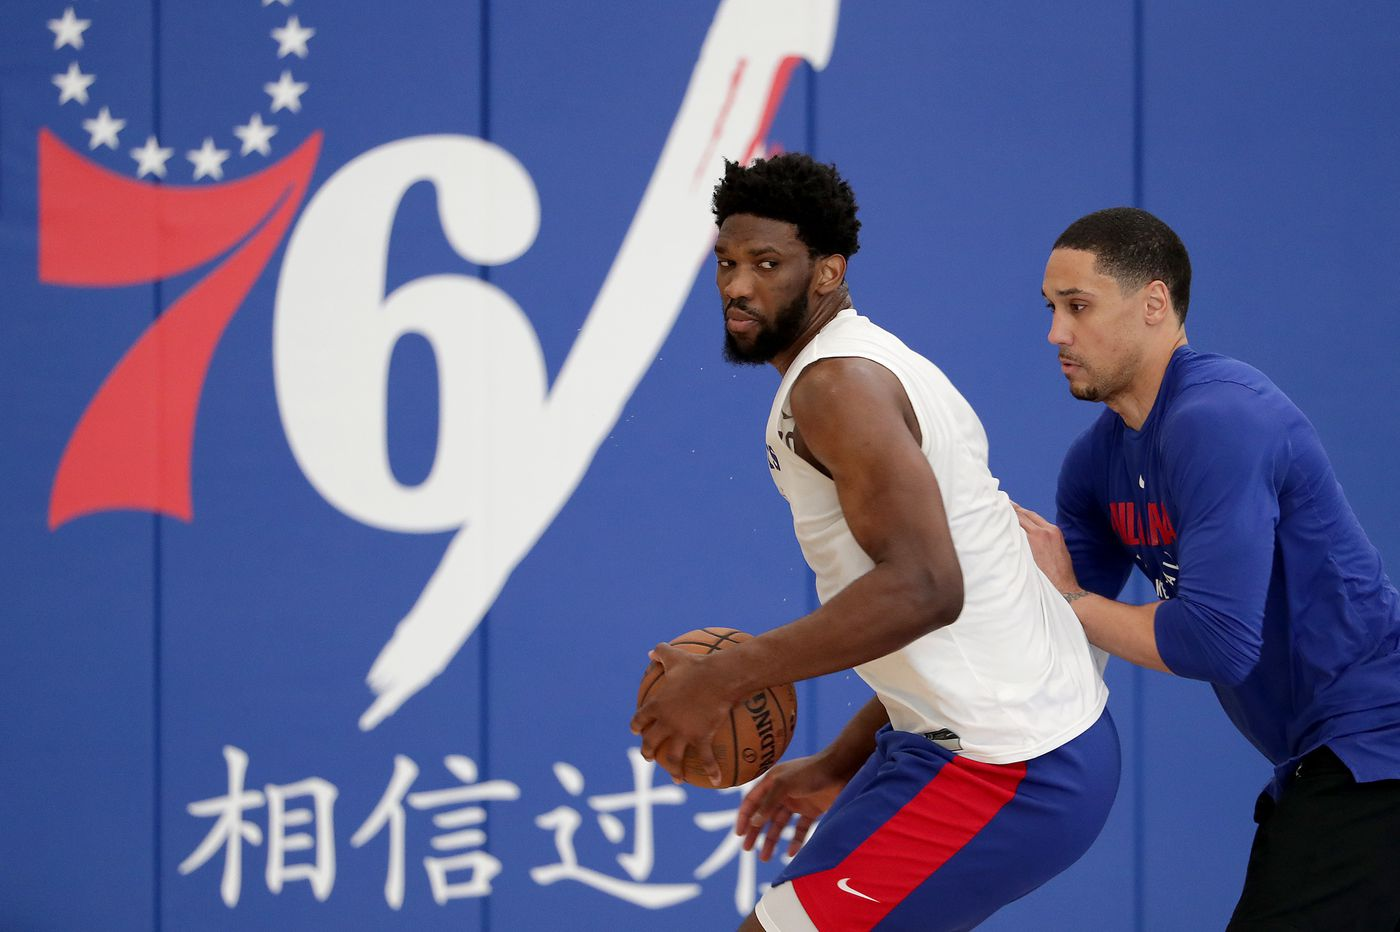 Countrymen Joel Embiid, Pascal Siakam kick off trash talk ahead of series